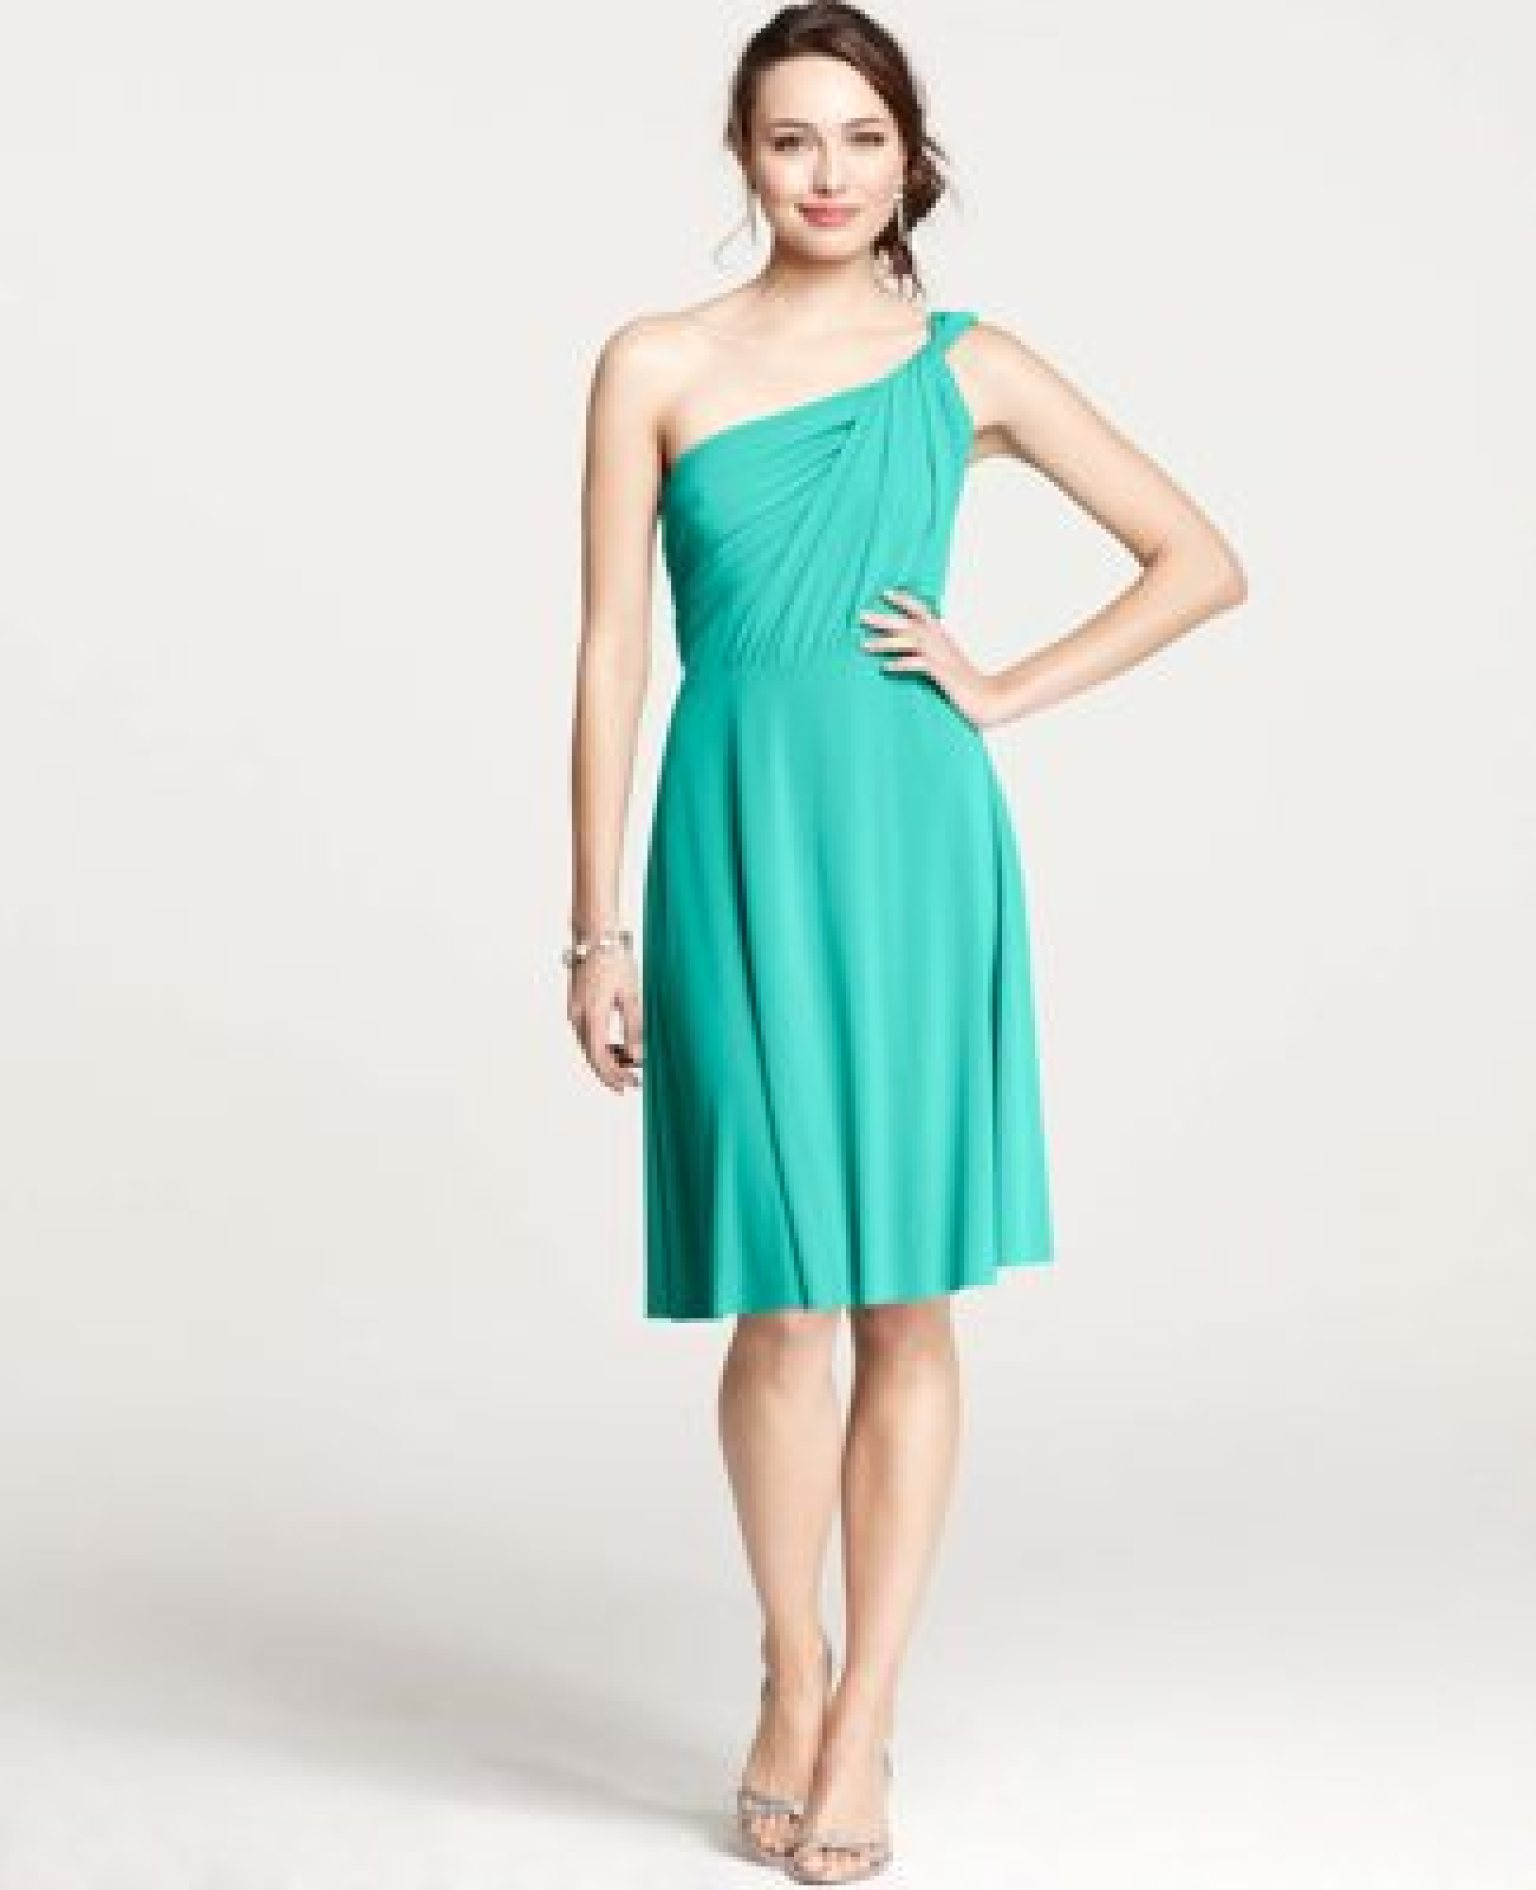 wedding guest dresses for summer affairs photos huffpost